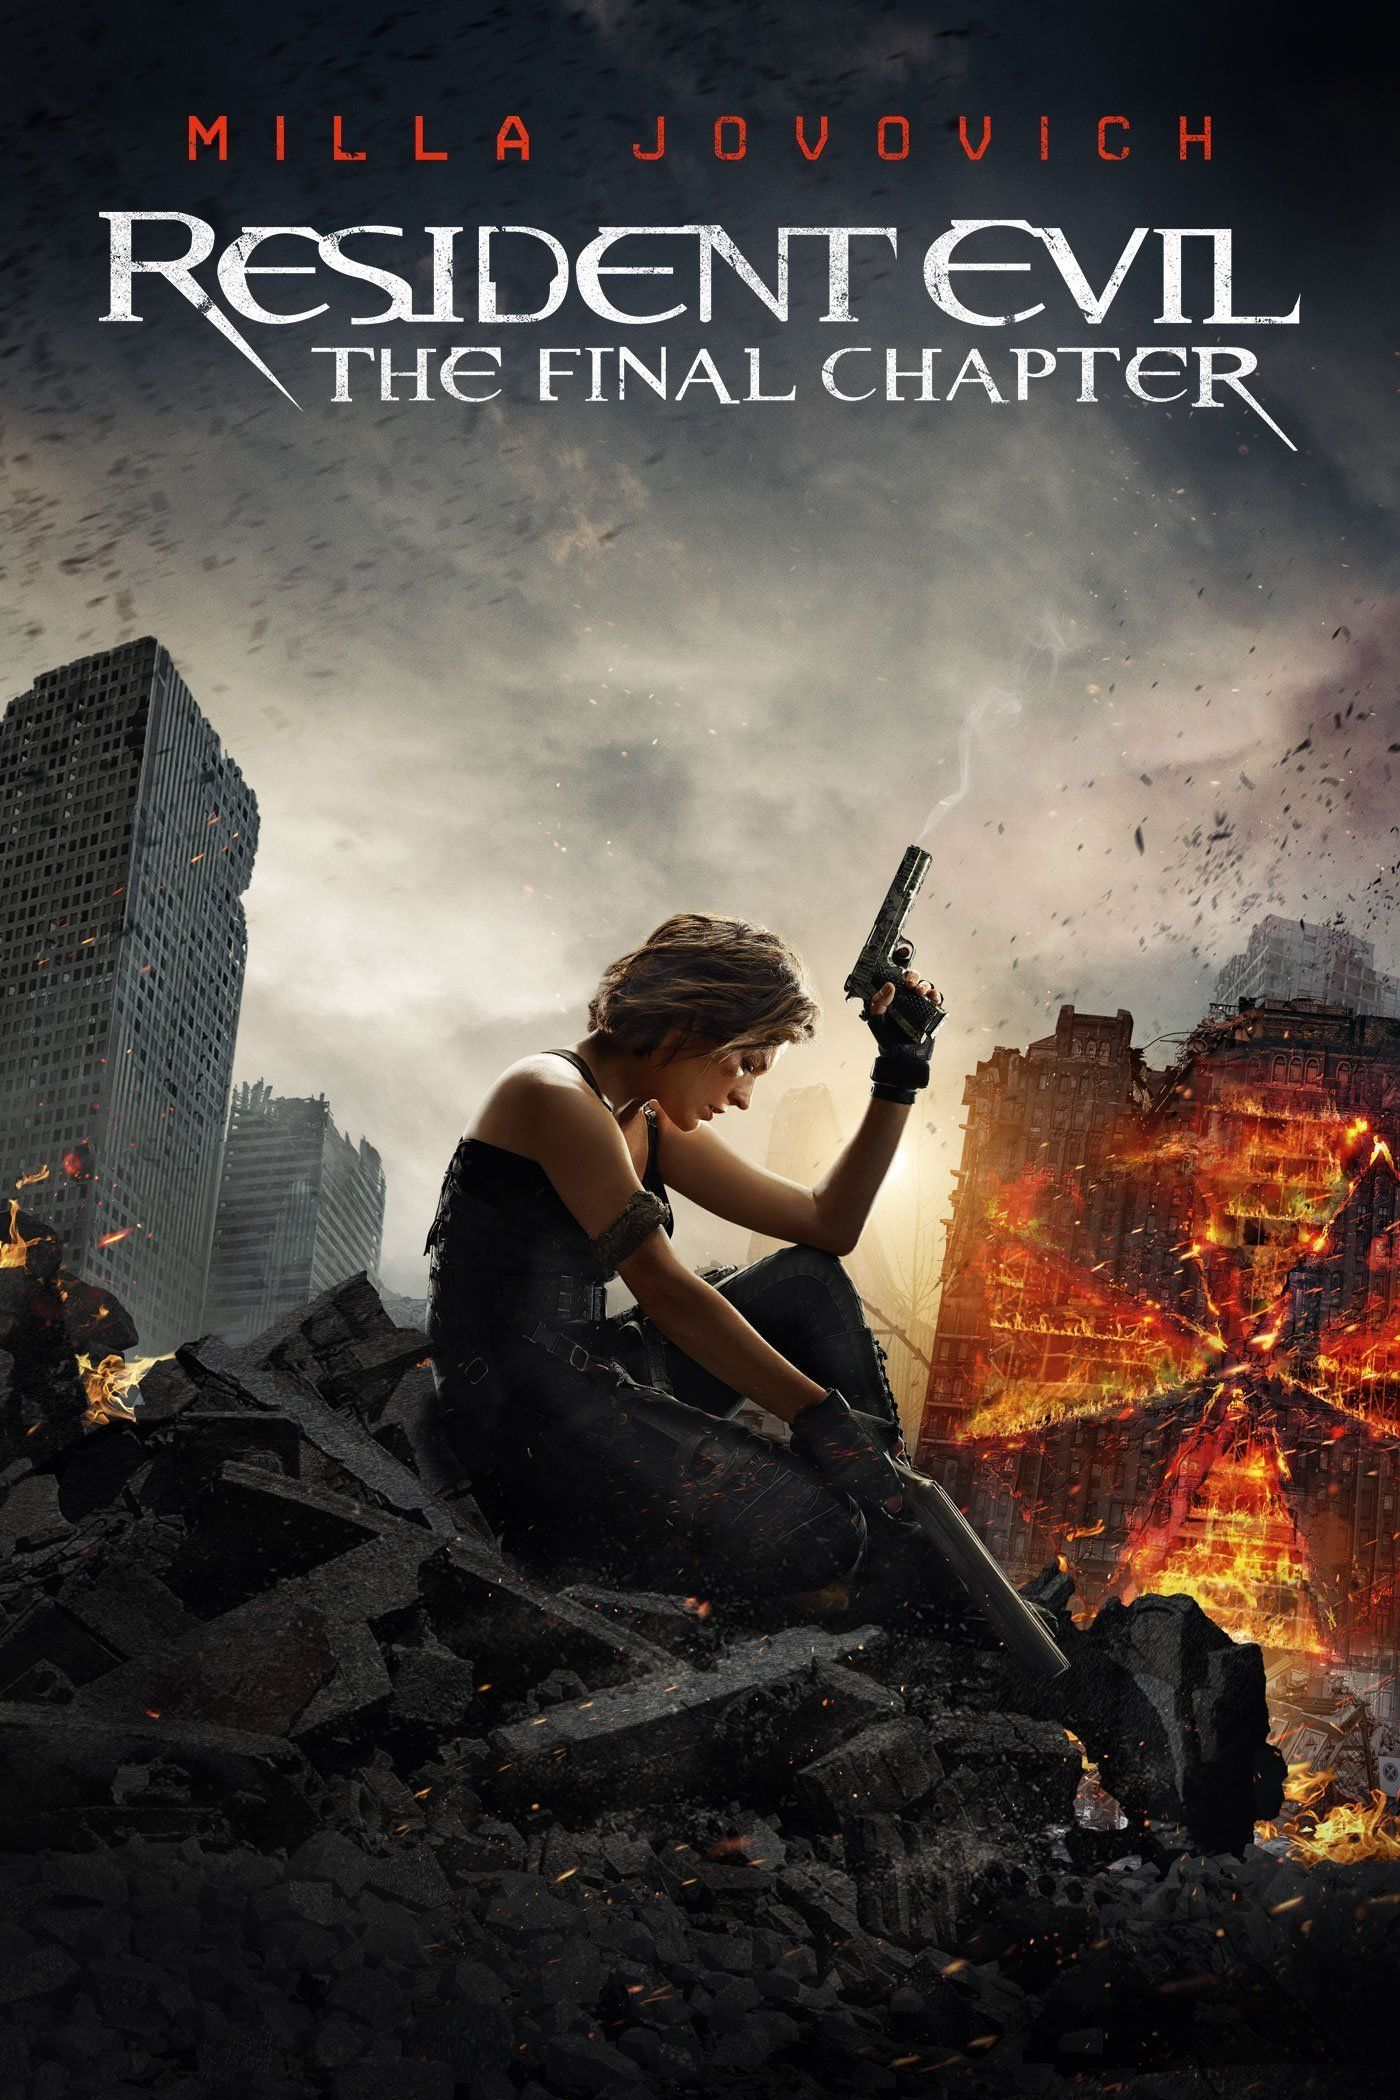 Resident evil the final chapter 4k 2016 uhd ultra hd blu ray in 2019 resident evil full - Resident evil final chapter 4k ...